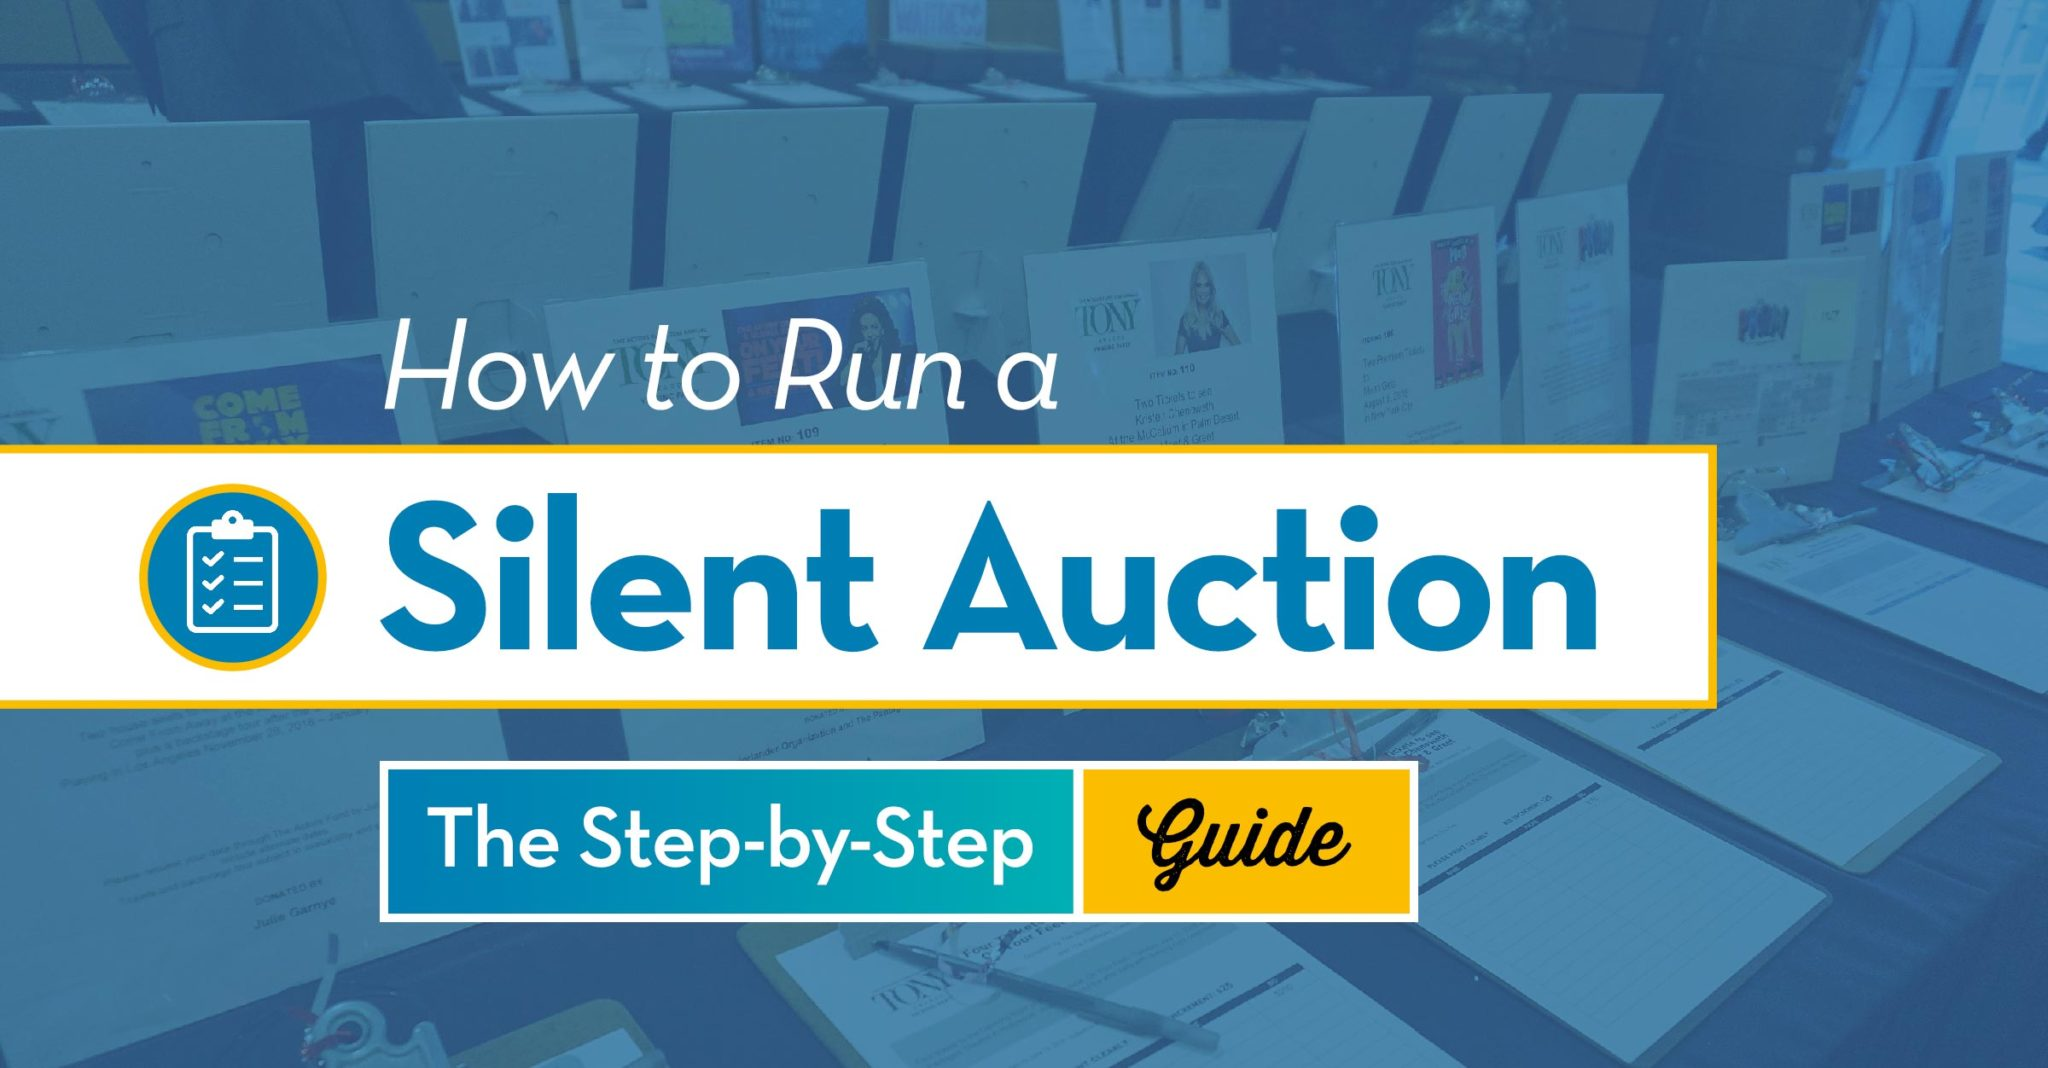 How to Run a Silent Auction The Step-by-Step Guide